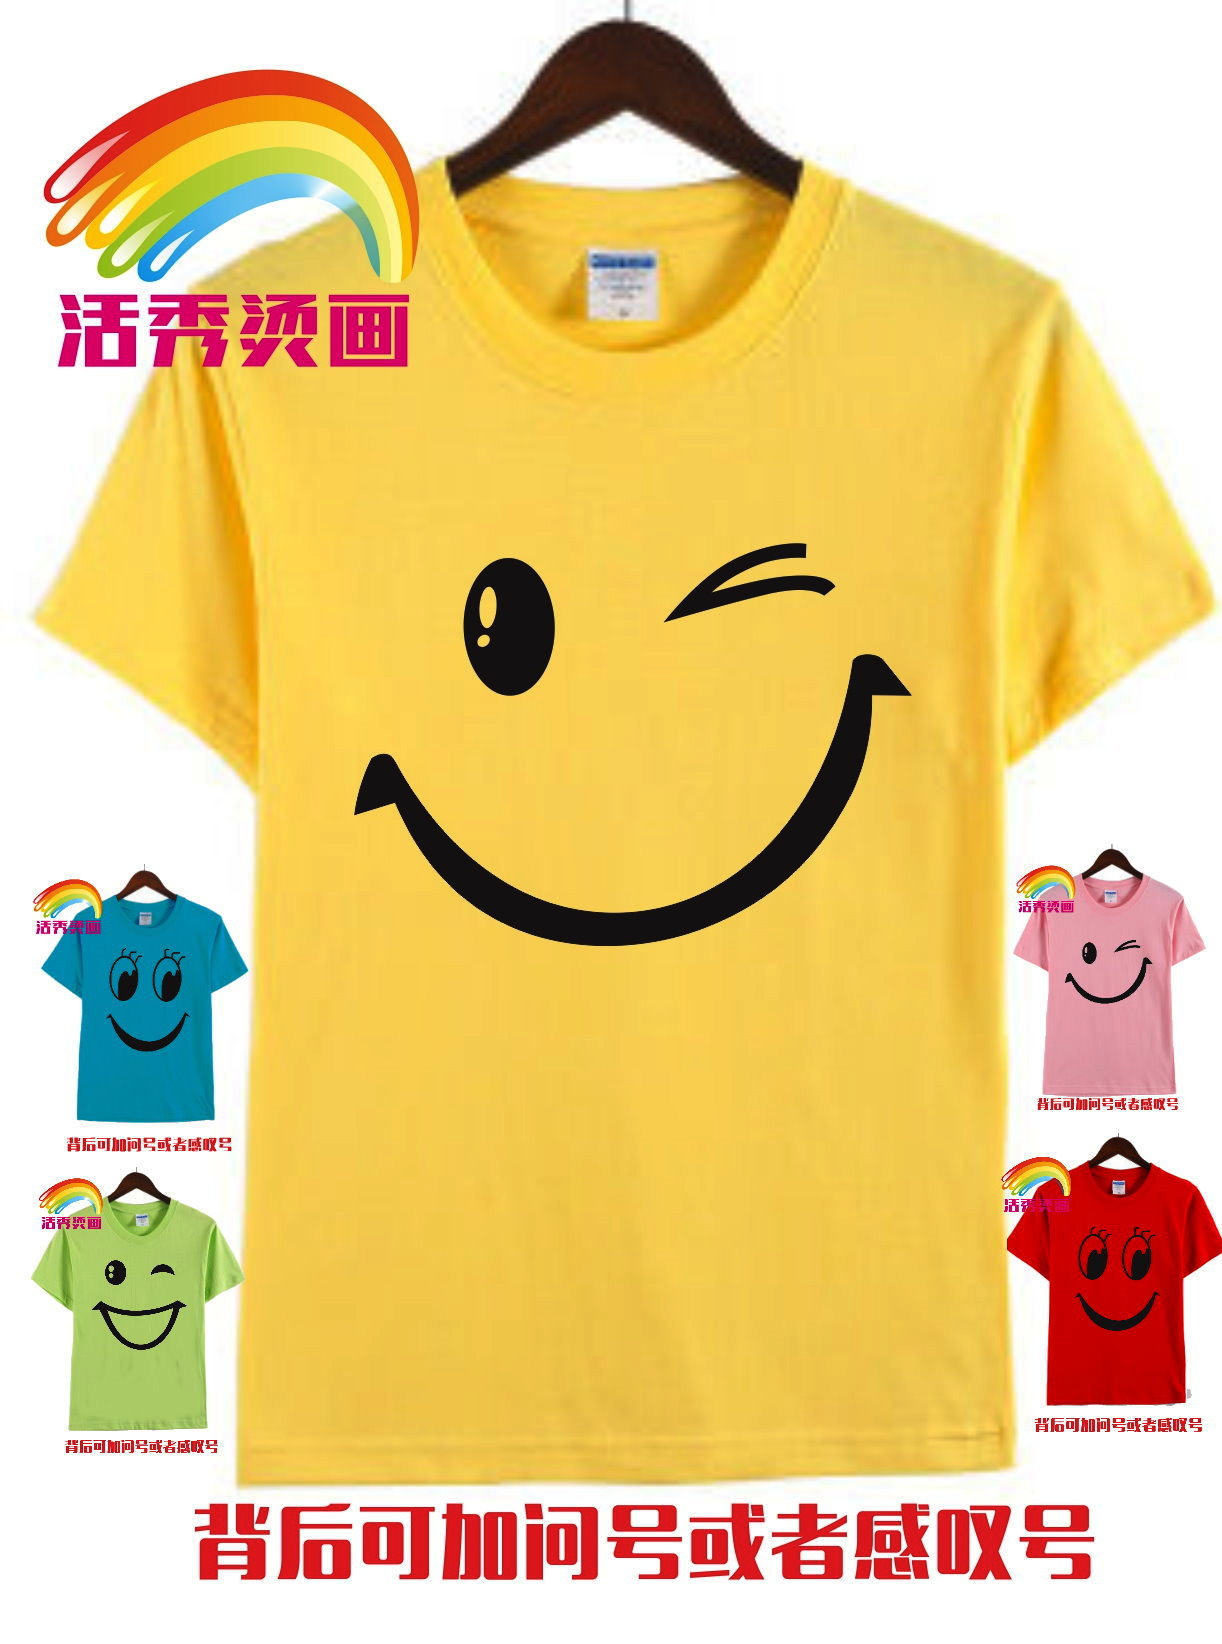 Pure cotton childrens kindergarten T-shirt smart baby performance costume smile smile 61 childrens Day T-shirt, parent-child clothing